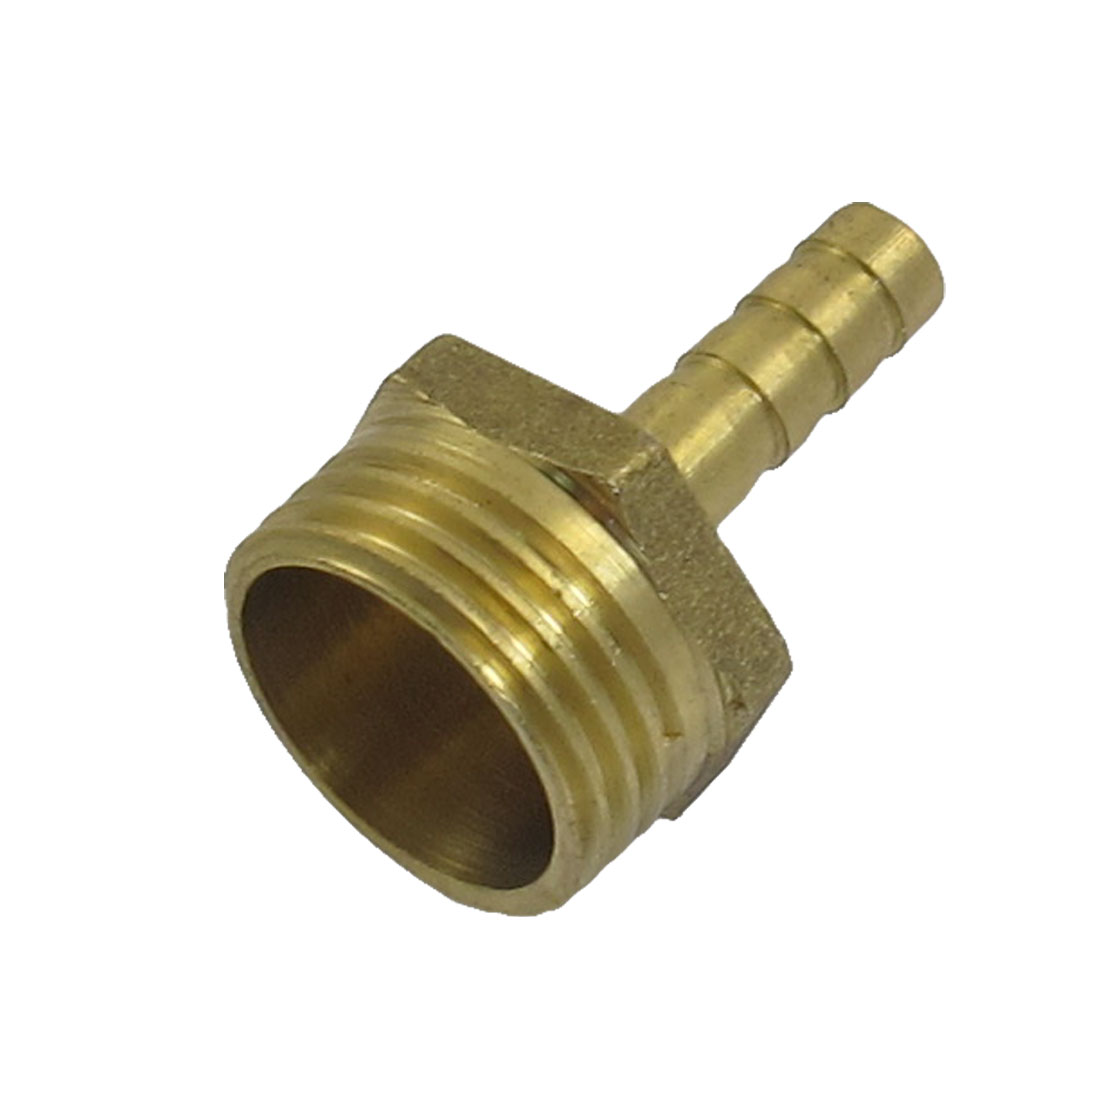 "Gold Tone Brass 6mm Hose Barb 1/2"" Male Thread Coupling Fitting"